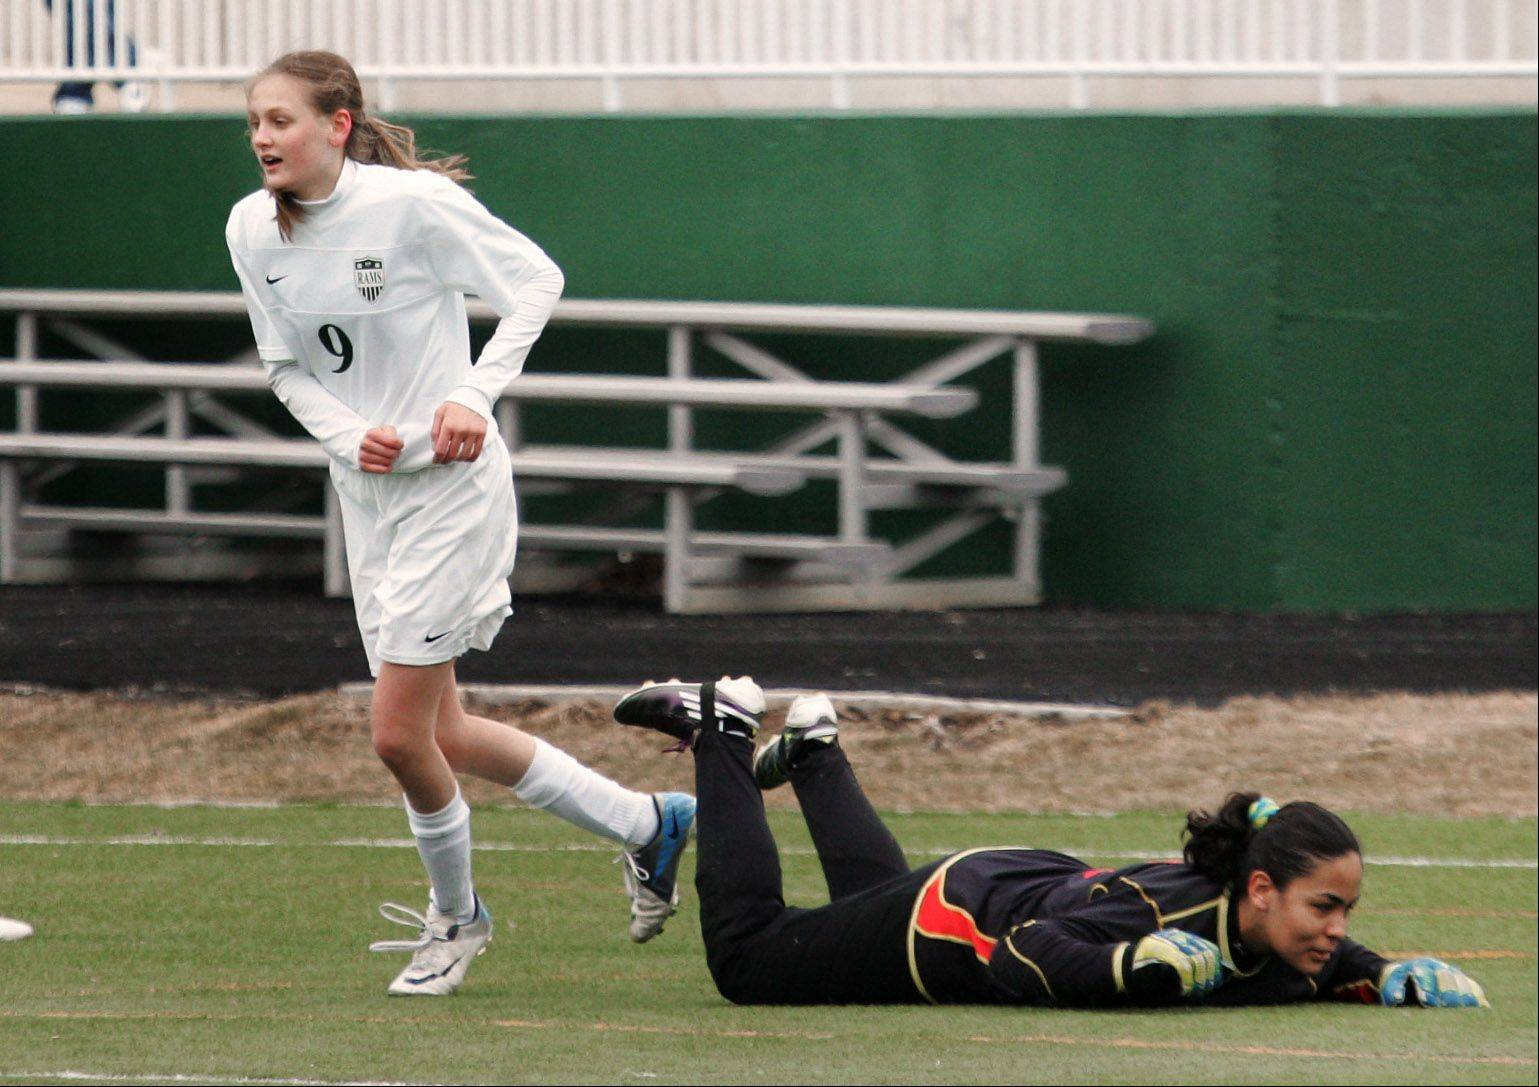 Grayslake fmidfielder Emily Werfel celebrates after scoring past Grant goalie Ana Rodas in the second half Wednesday at Grayslake Central.